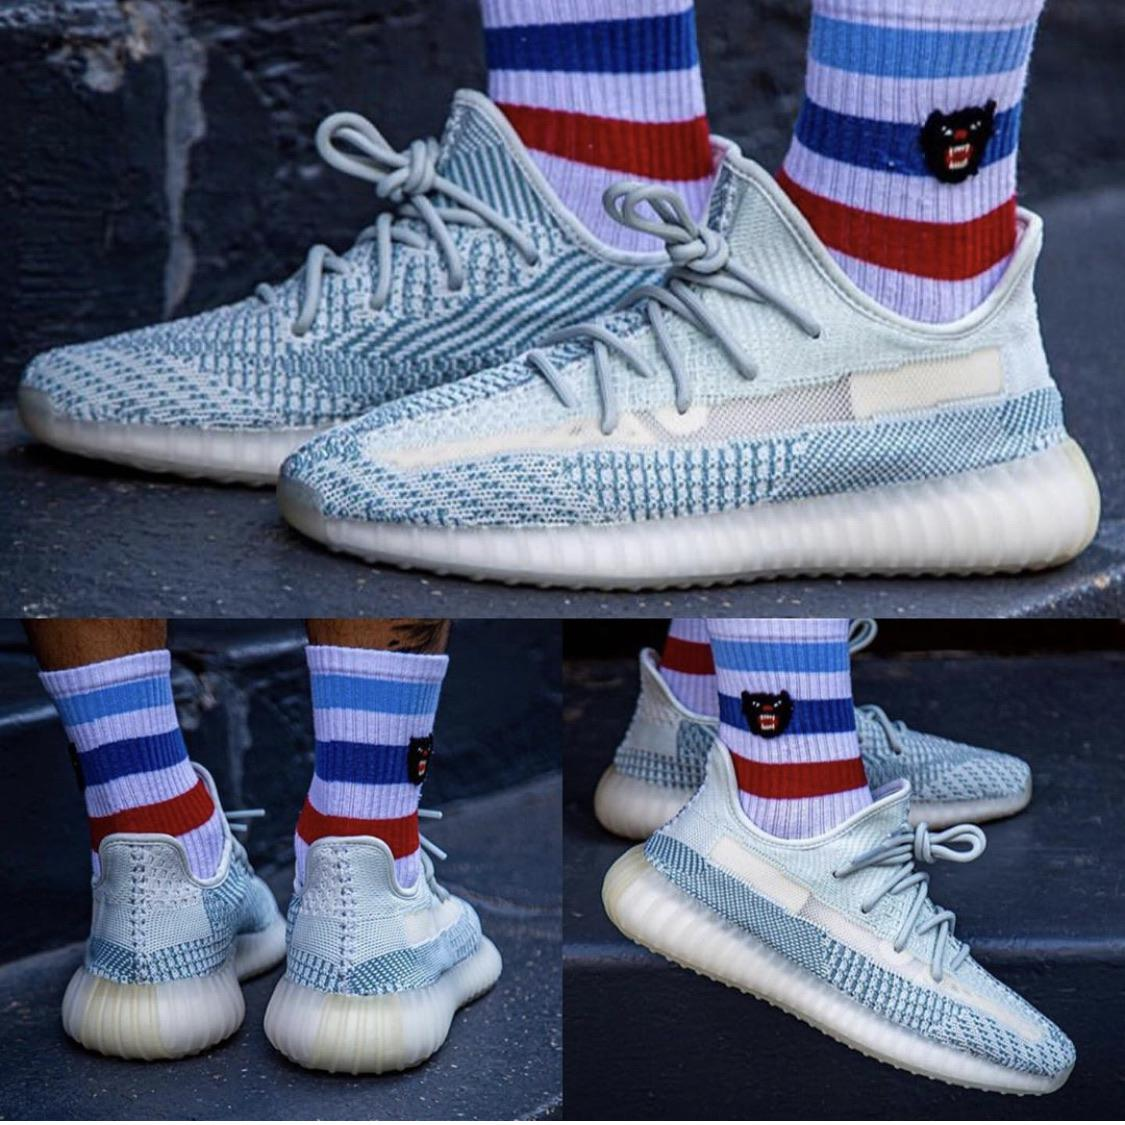 ADIDAS YEEZY BOOST 350 V2 /// CLOUD WHITE : Sneakers